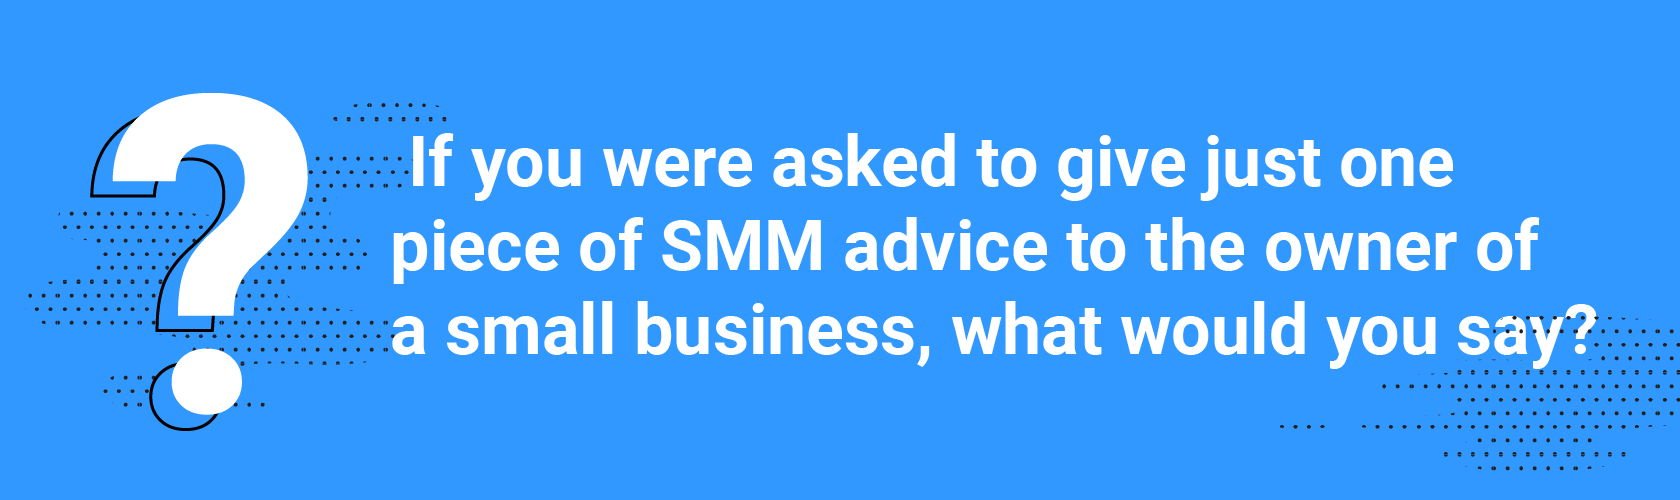 If you were asked to give just one piece of SMM advice to the owner of a small business, what would you say?